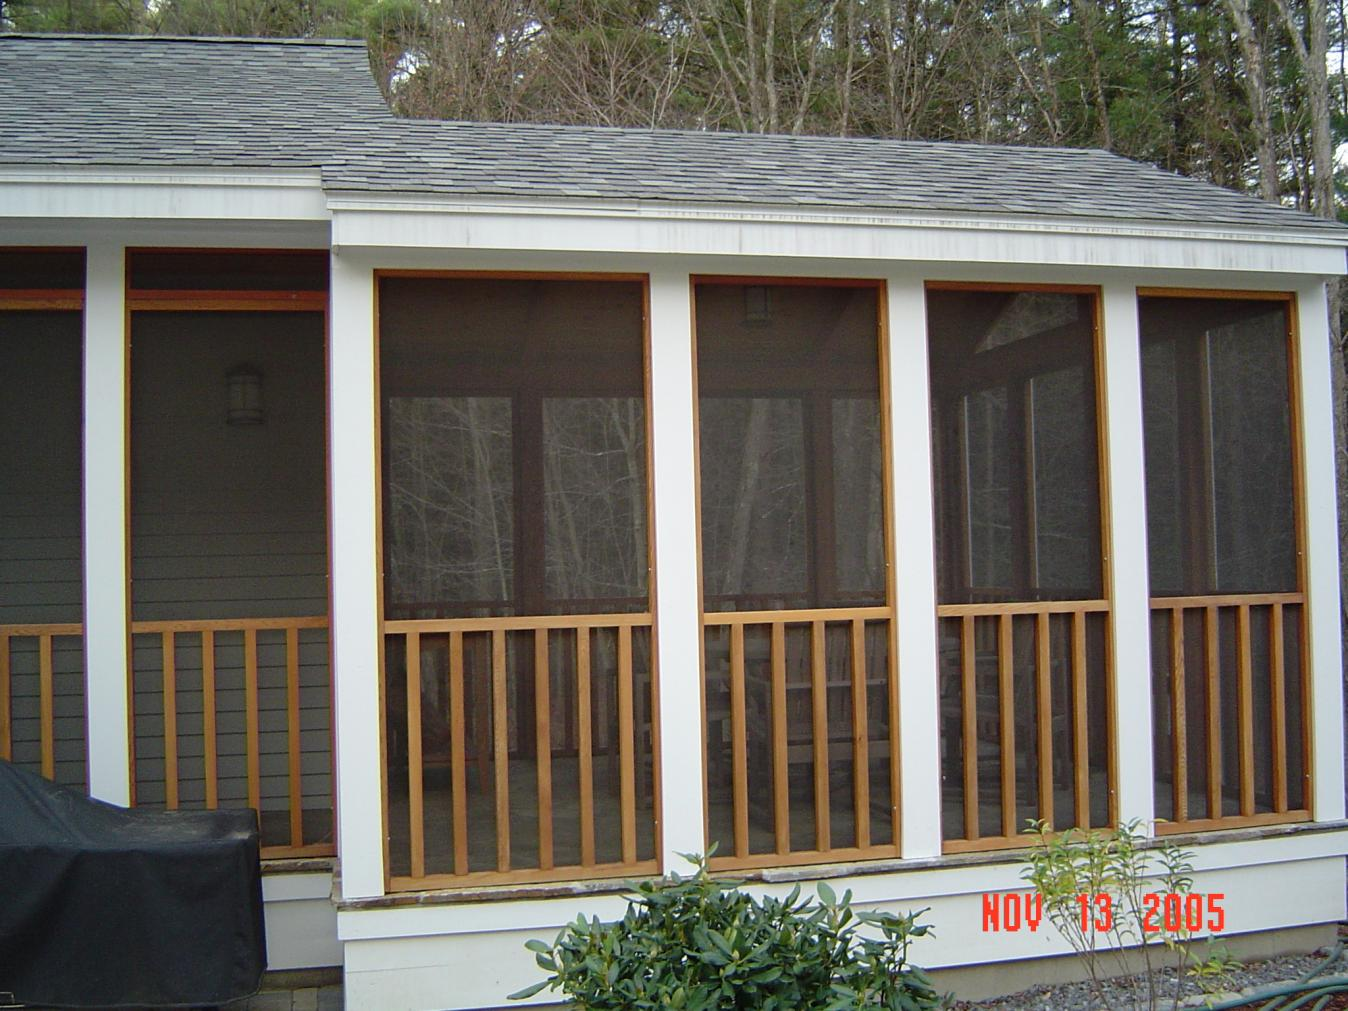 Screened porch frame design-tinglepaugh-144.jpg